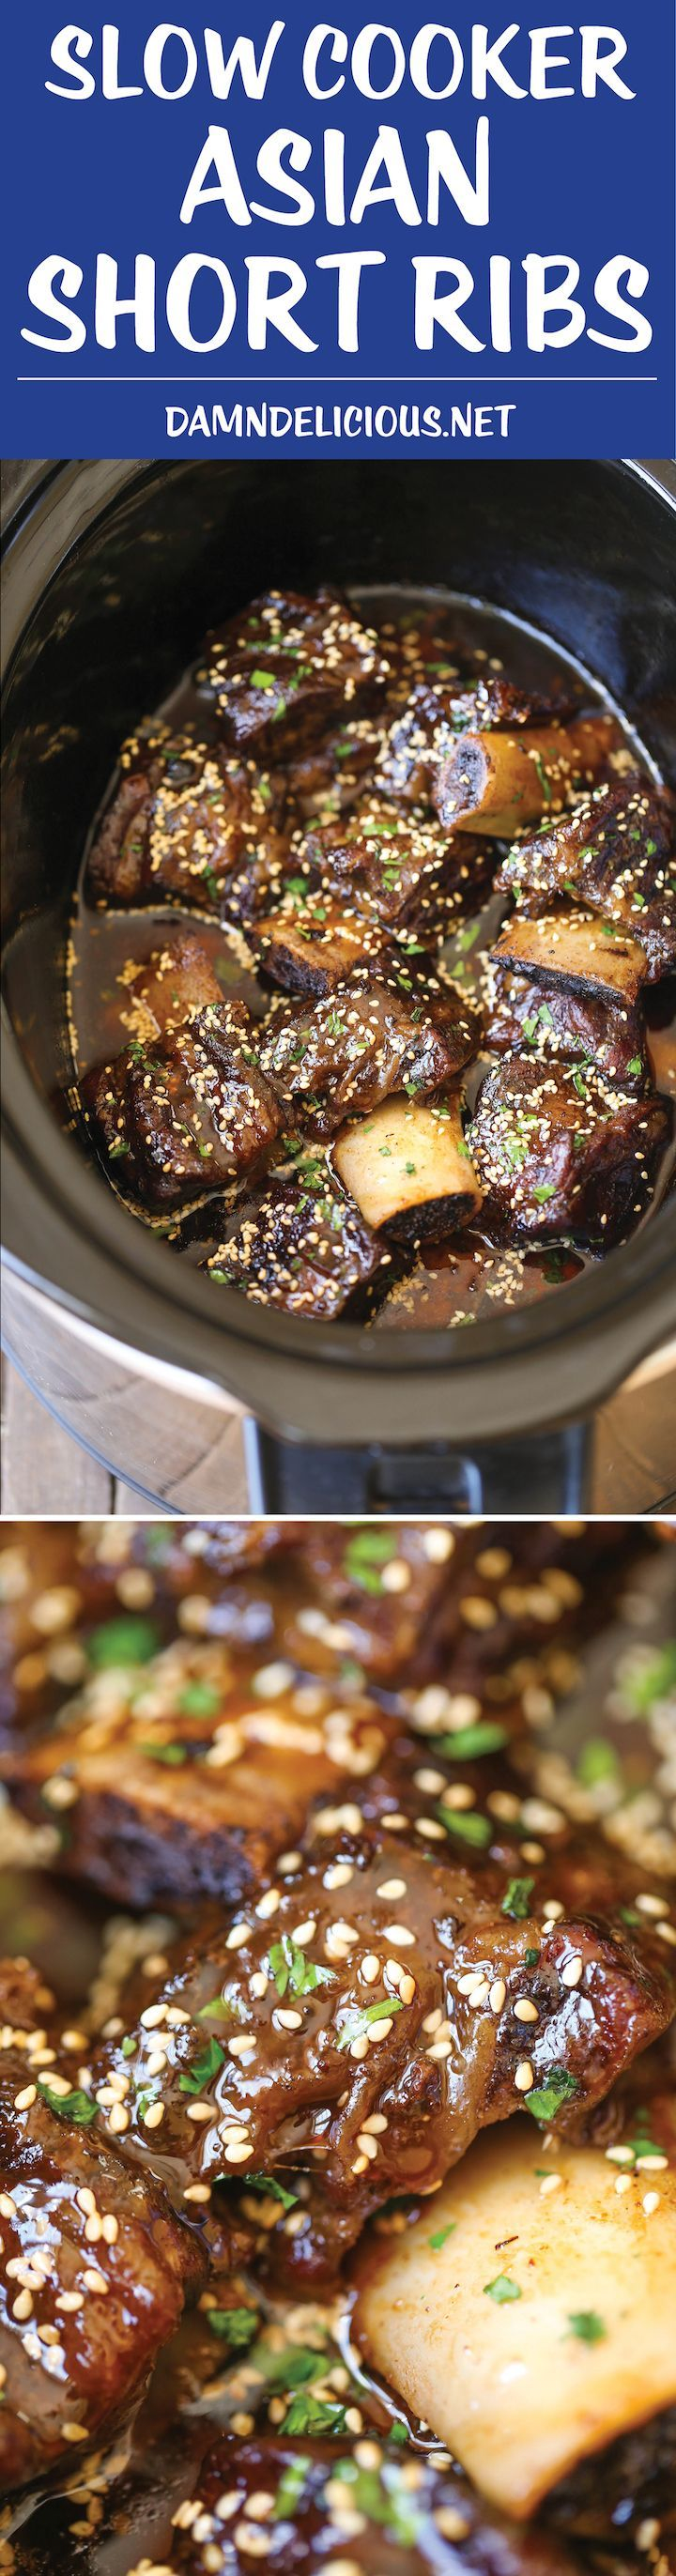 Slow Cooker Asian Short Ribs - Literally fall-off-the-bone tender! And all you have to do is throw everything into a crockpot.That's it! No cooking at all!